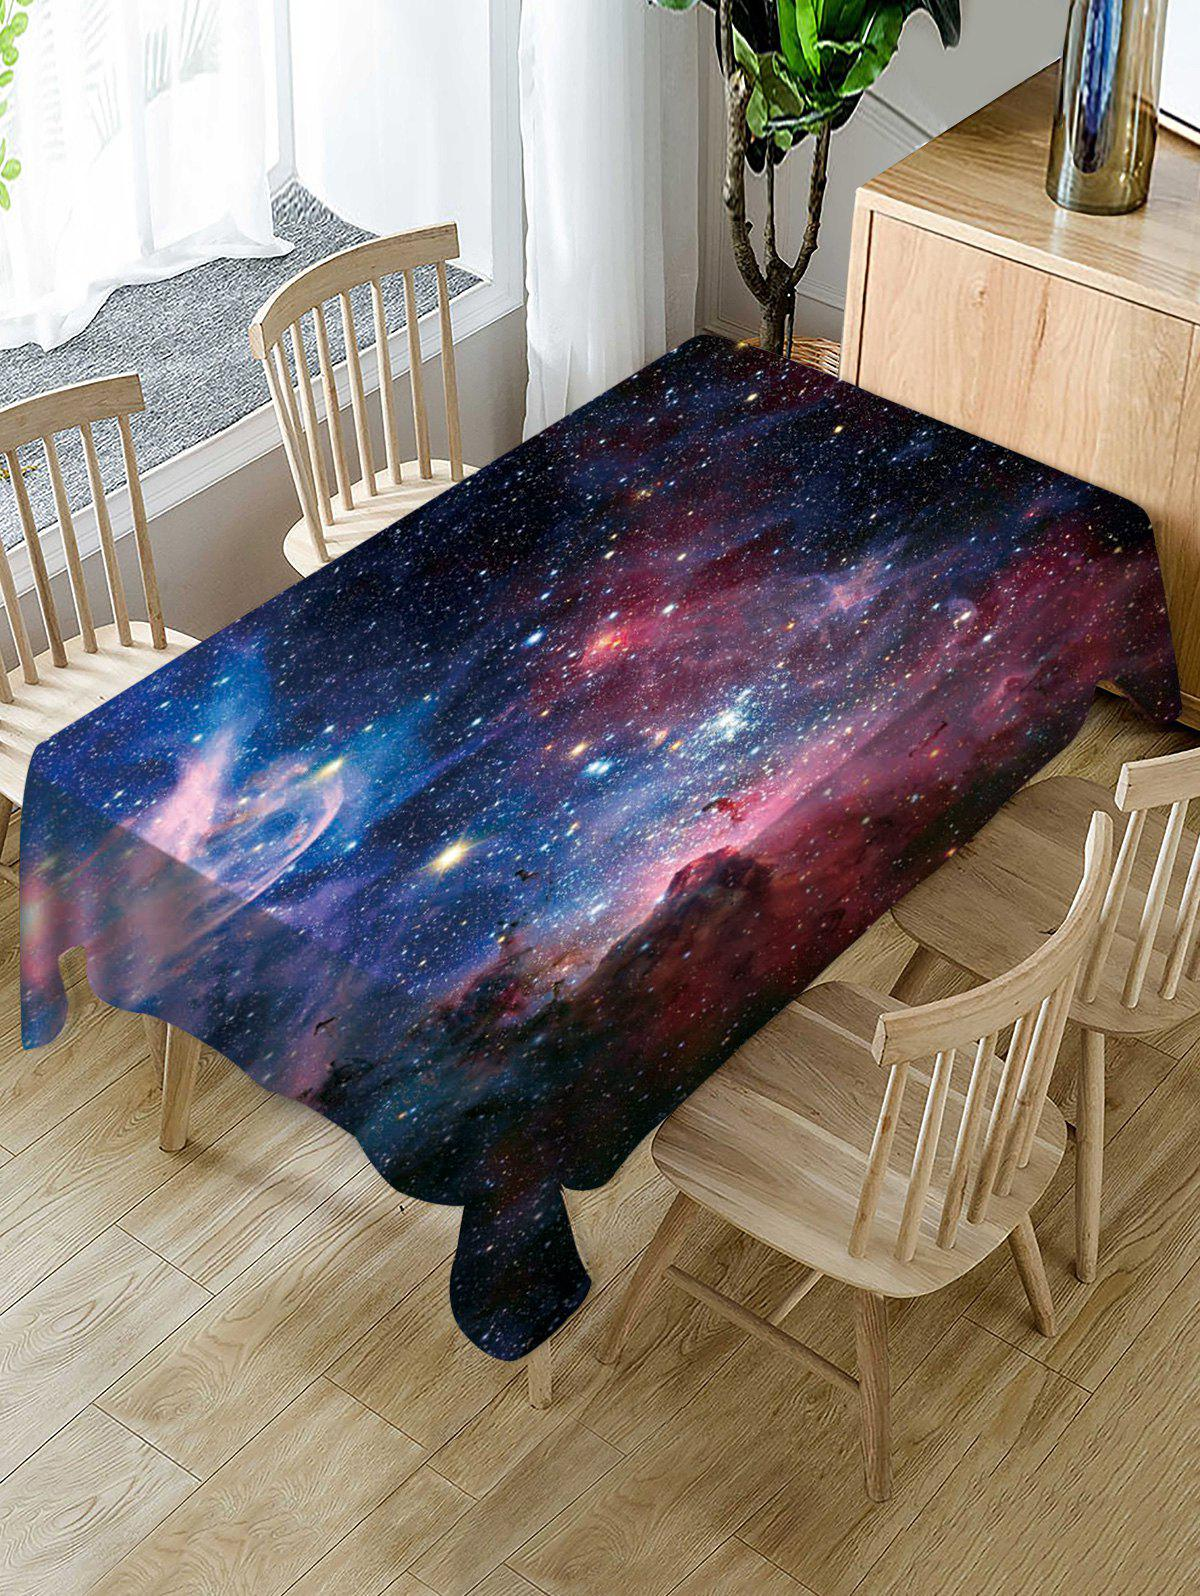 Affordable Galaxy Print Fabric Waterproof Tablecloth